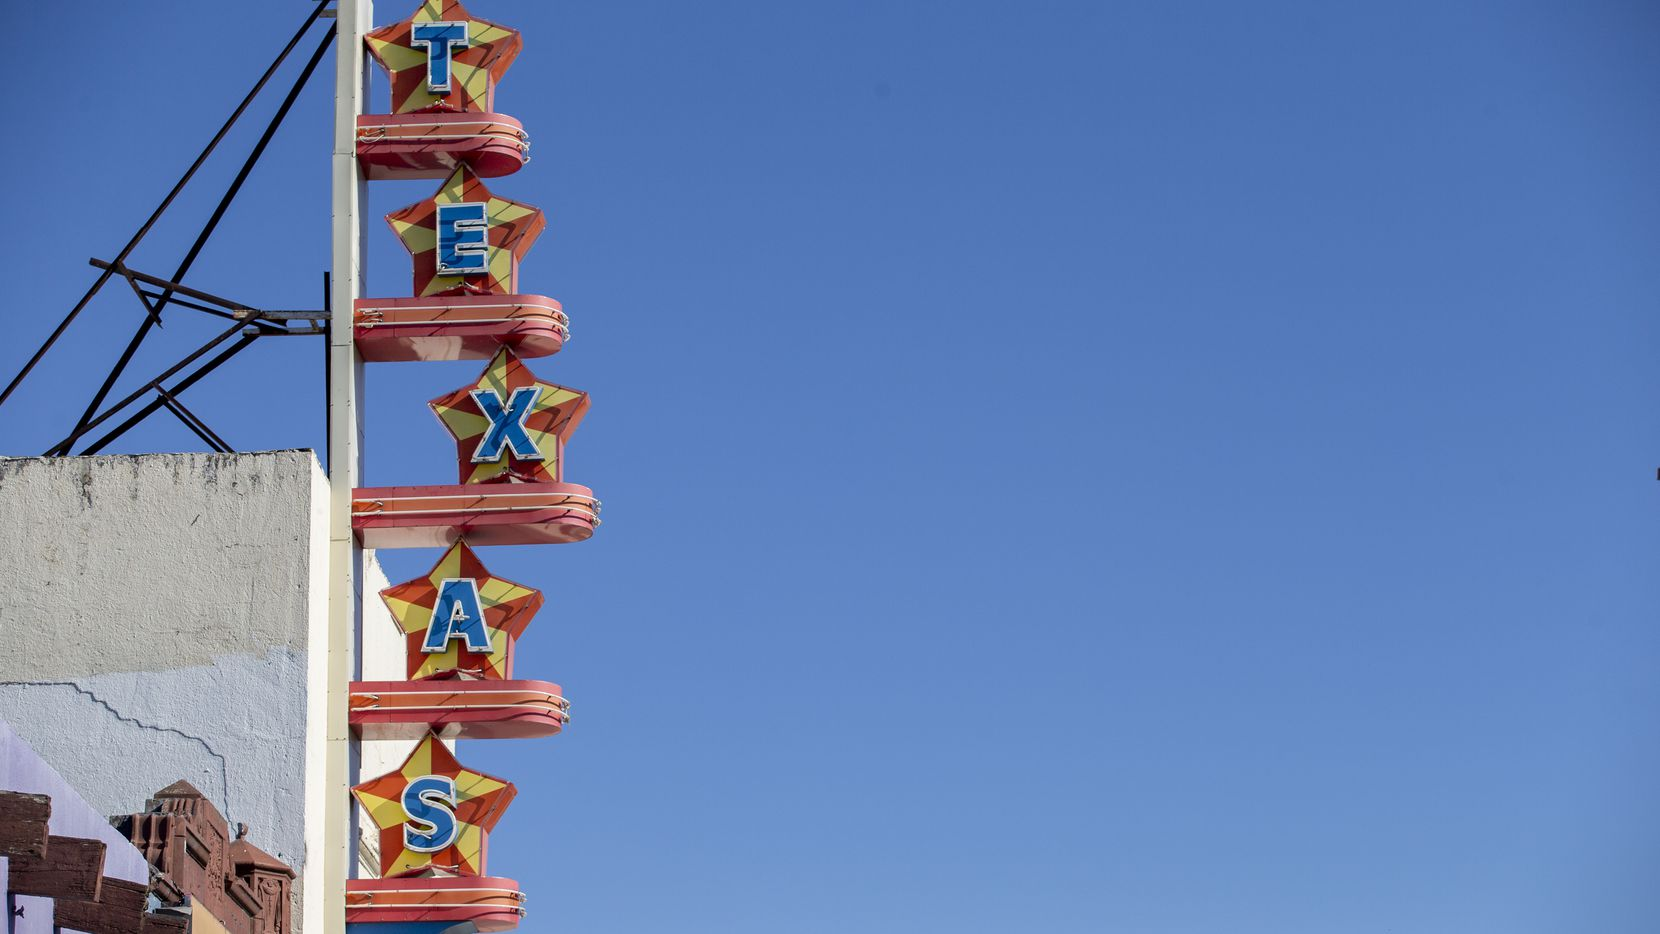 Signage for the Texas Theatre, which has been closed due to the pandemic, stands out against a bright blue sky Tuesday.